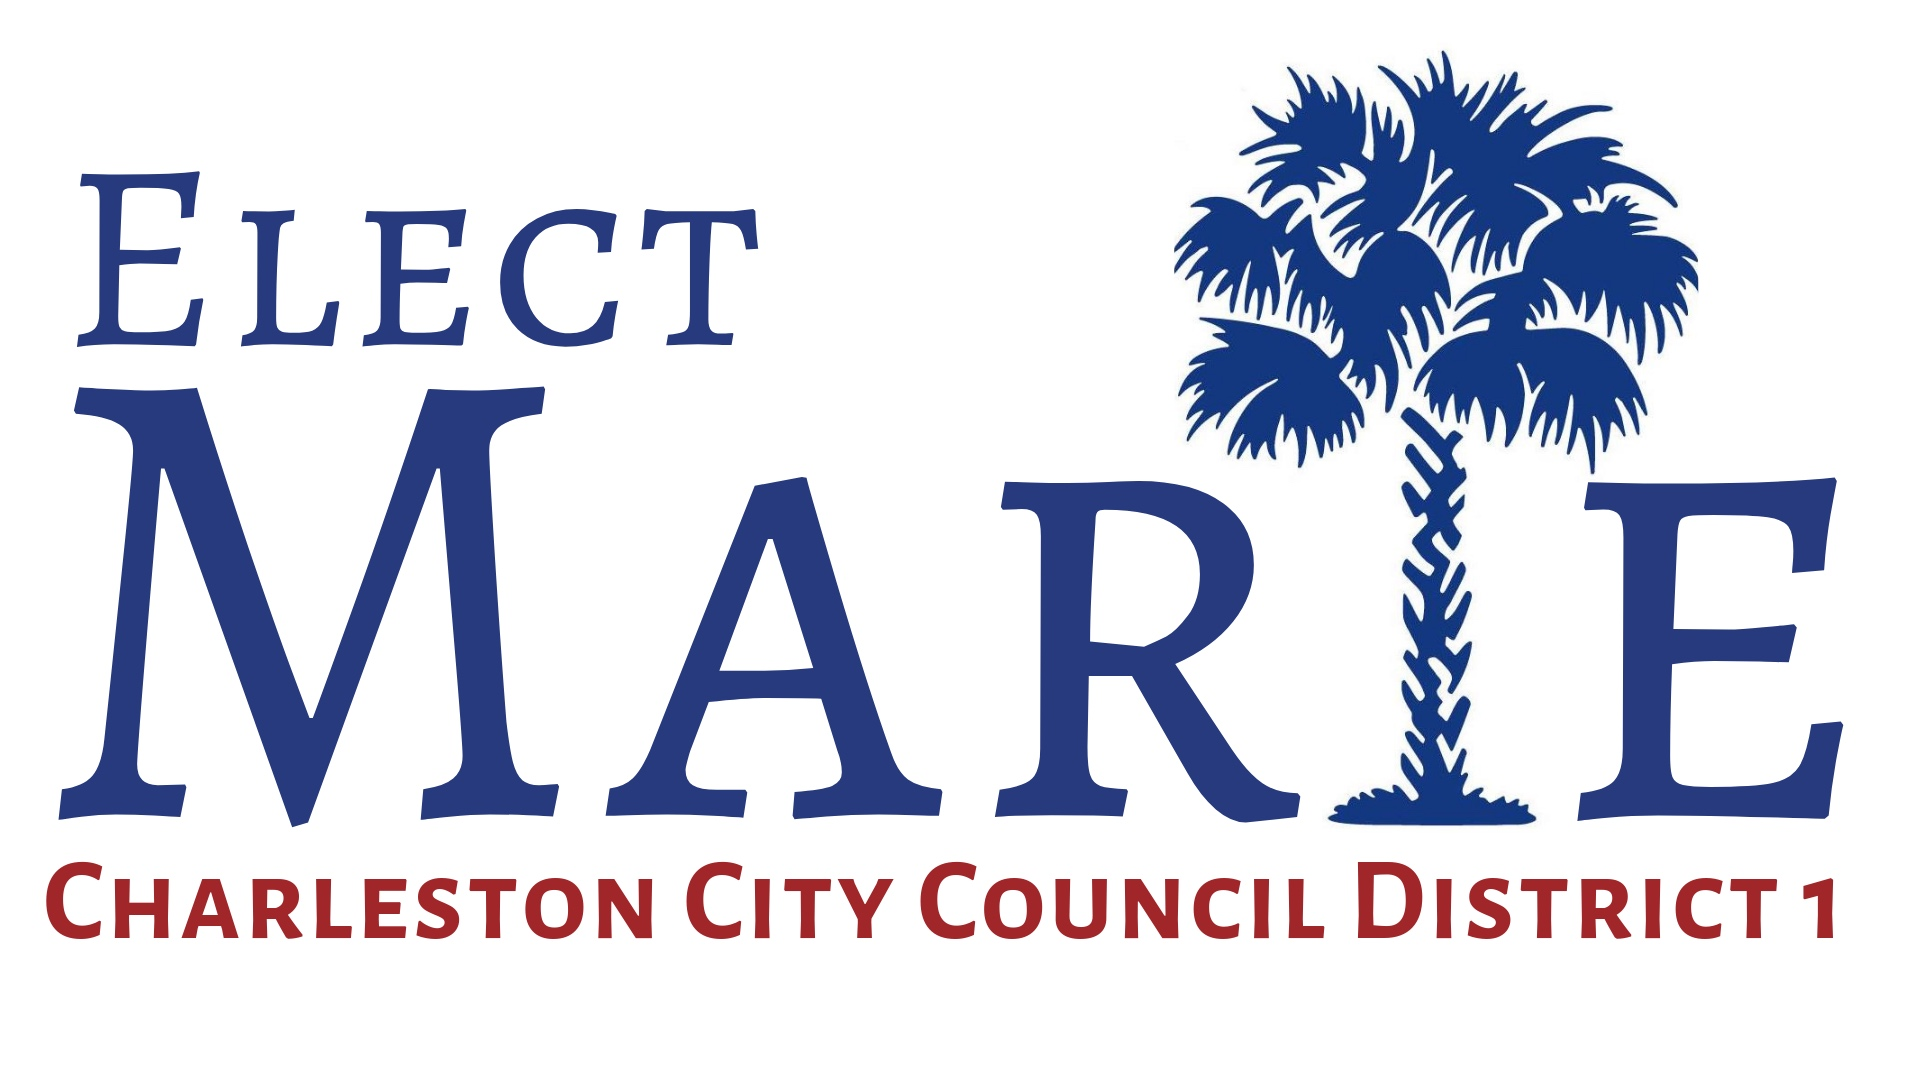 Contribute - Our goal of bringing a fresh voice to City Council takes your generous financial contributions and willingness to volunteer.